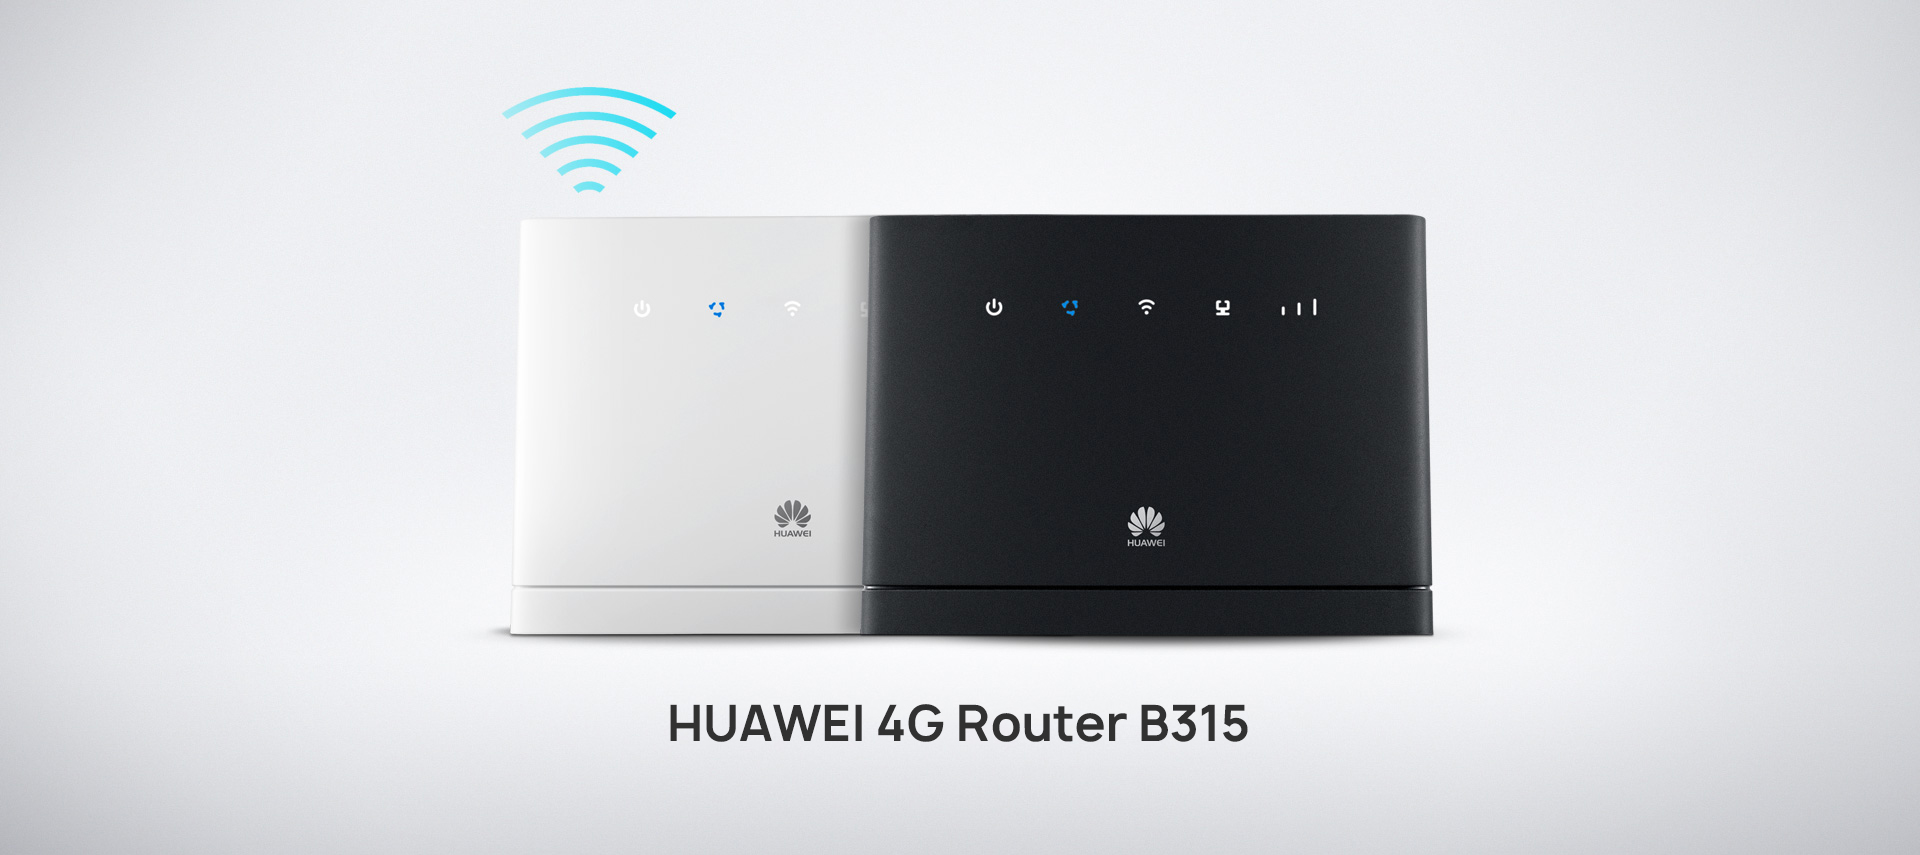 HUAWEI 4G Router B315, LTE CPE B315, wireless gateway Wi-Fi